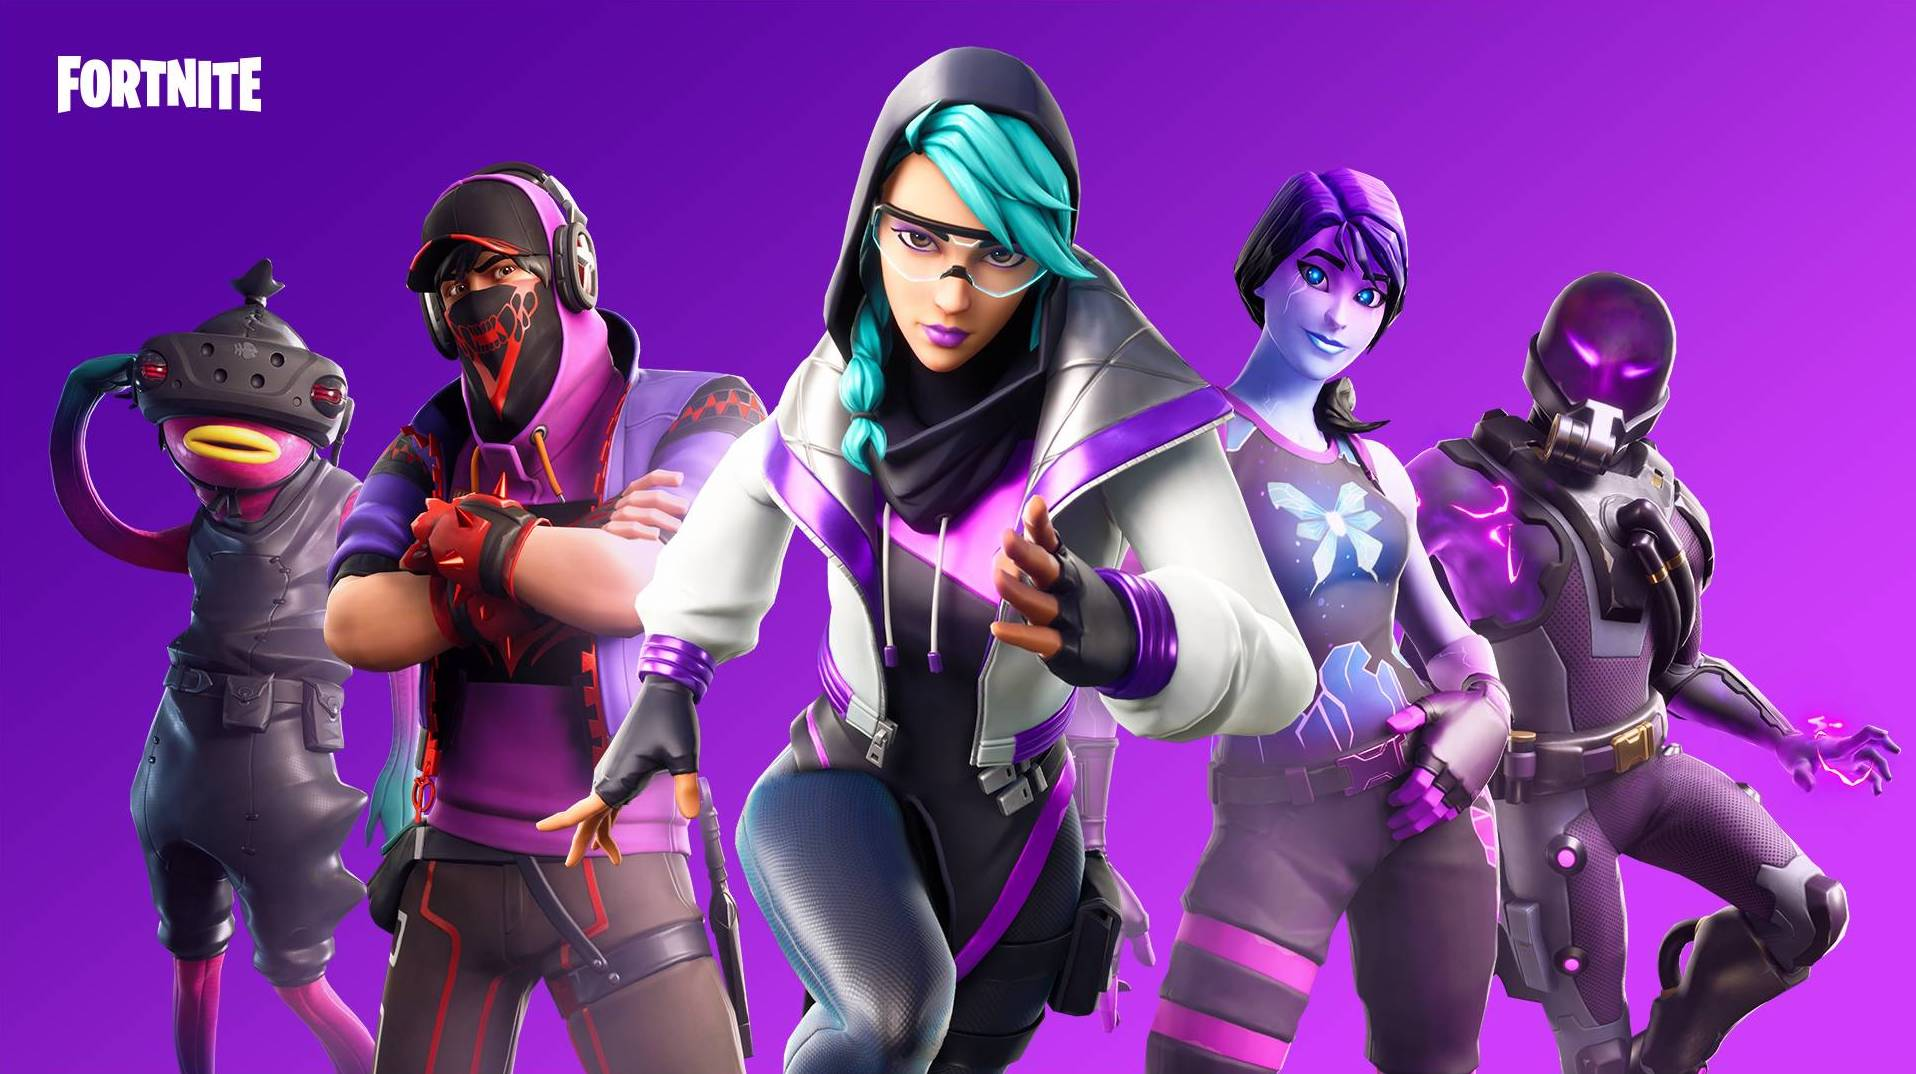 Apple has removed Fortnite from the App Store